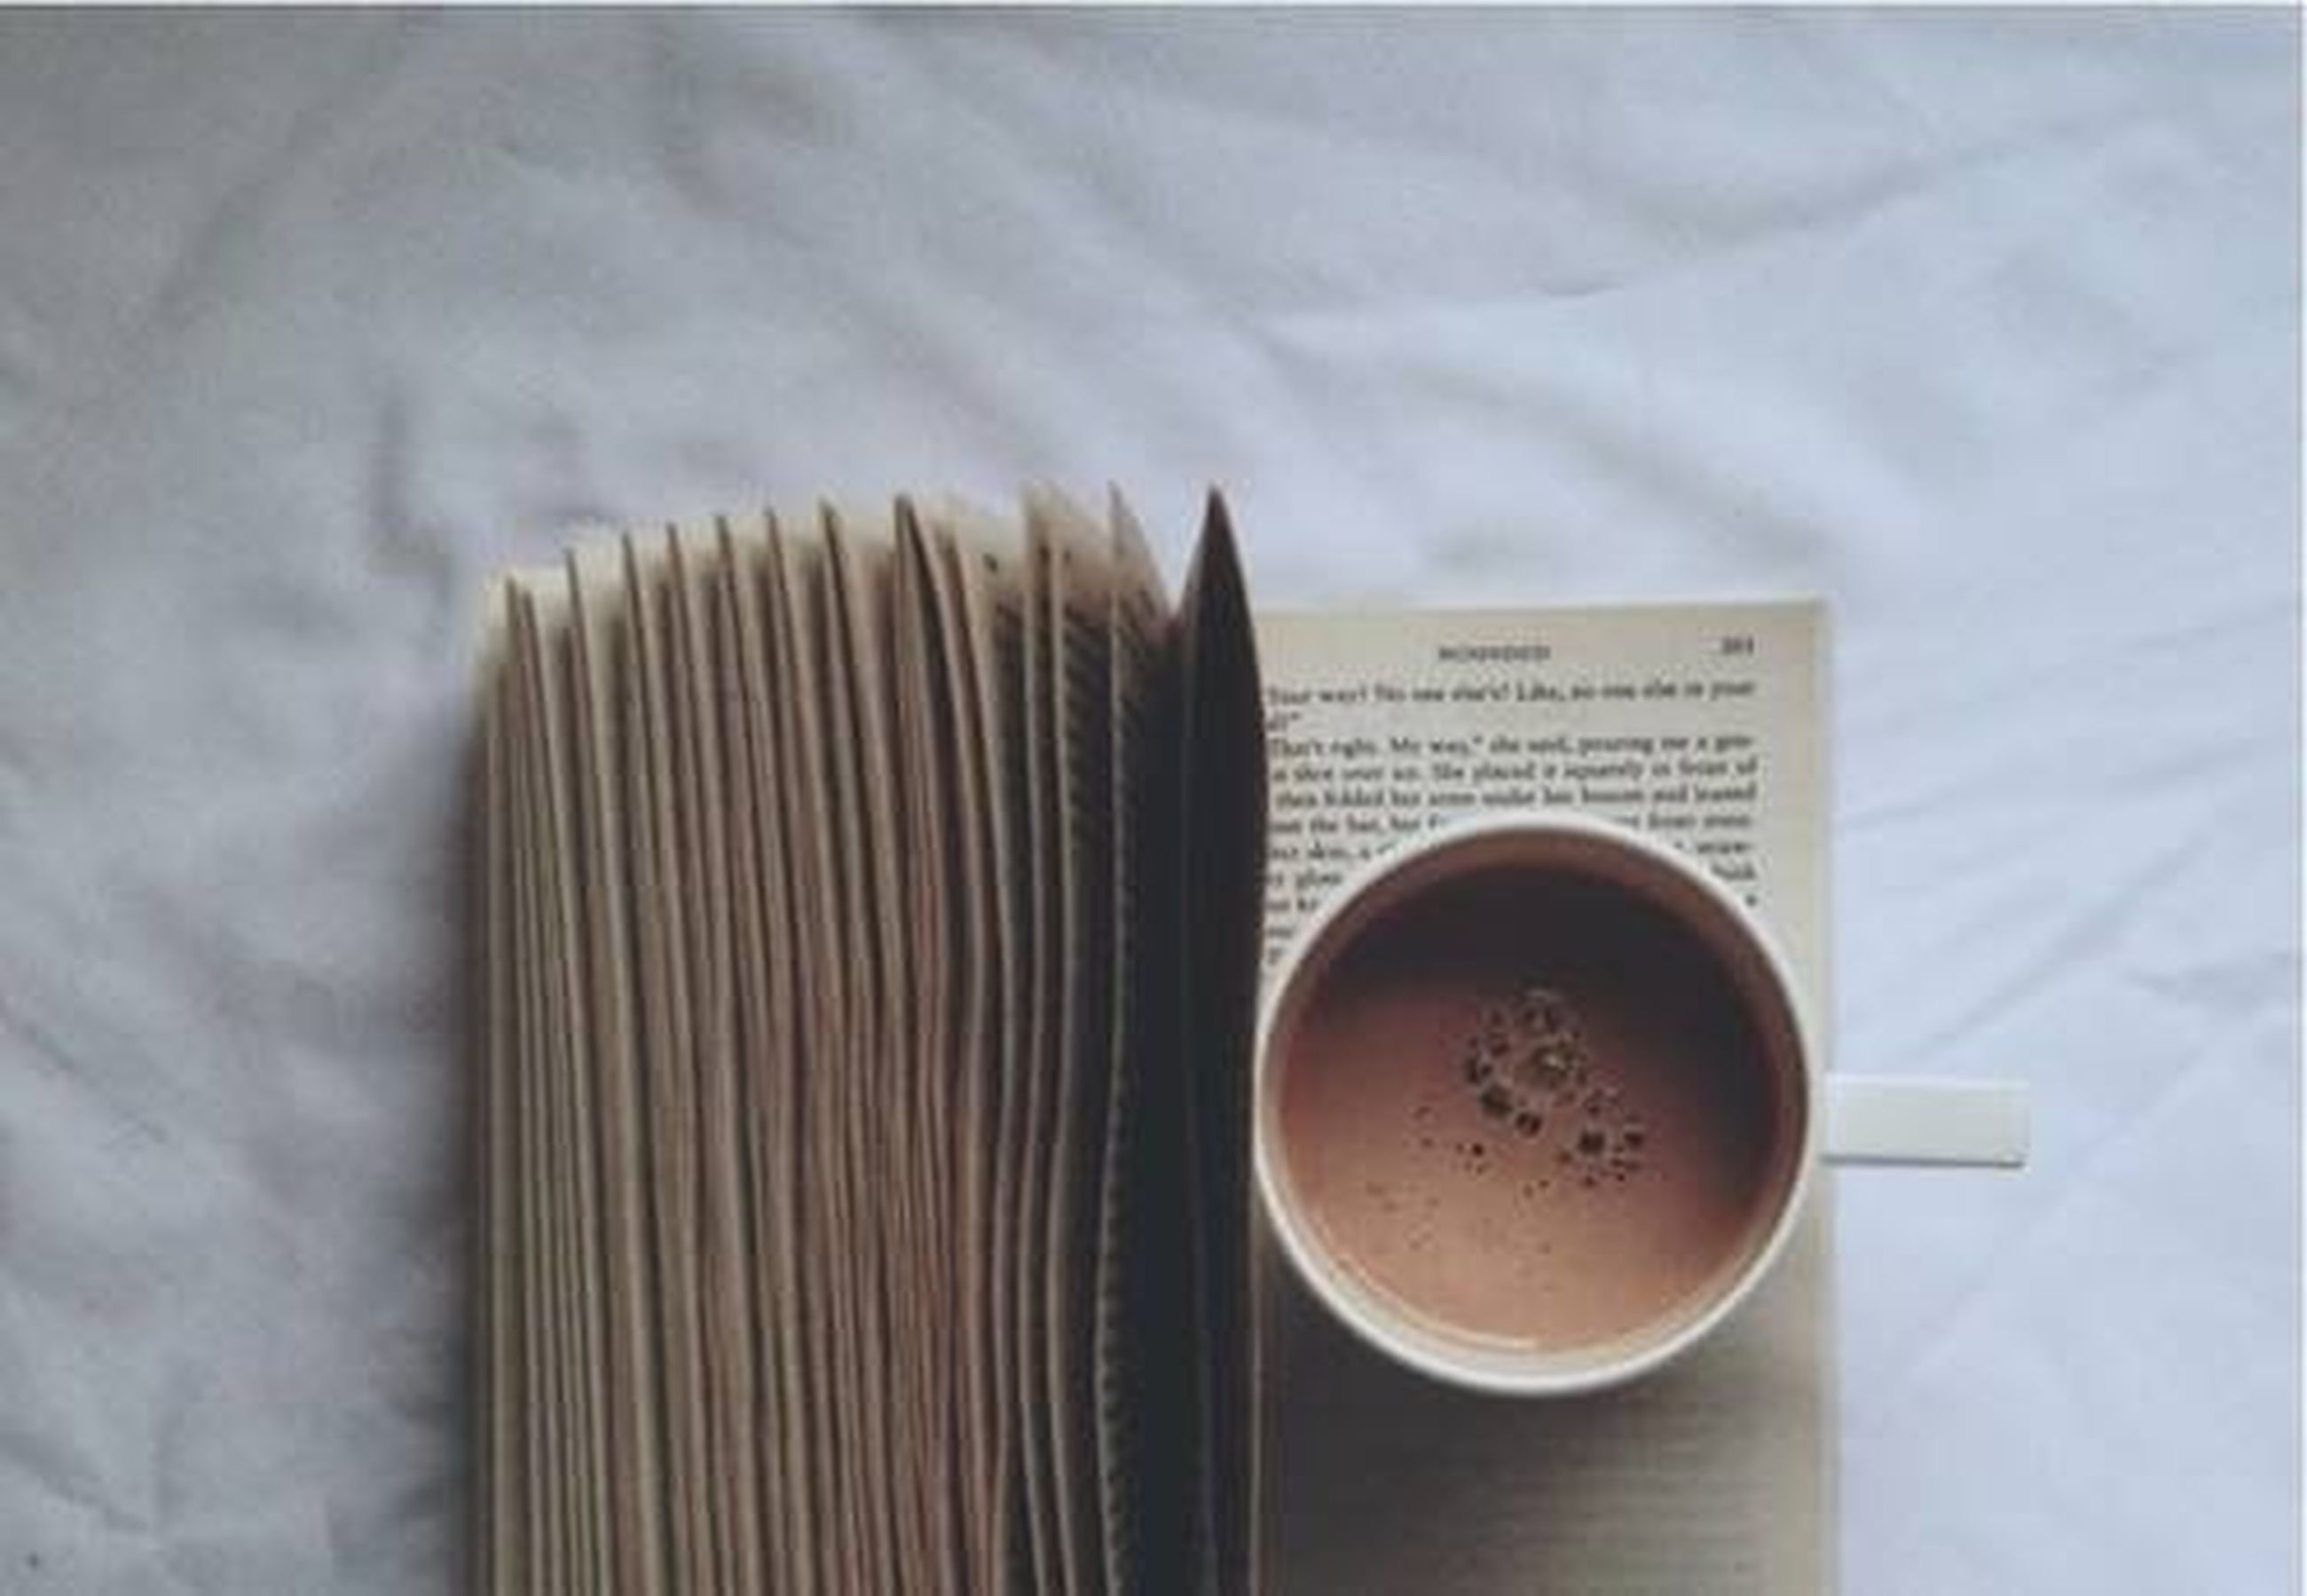 indoors, coffee cup, food and drink, drink, still life, coffee - drink, table, refreshment, coffee, close-up, freshness, cup, communication, saucer, high angle view, text, frothy drink, western script, spoon, book